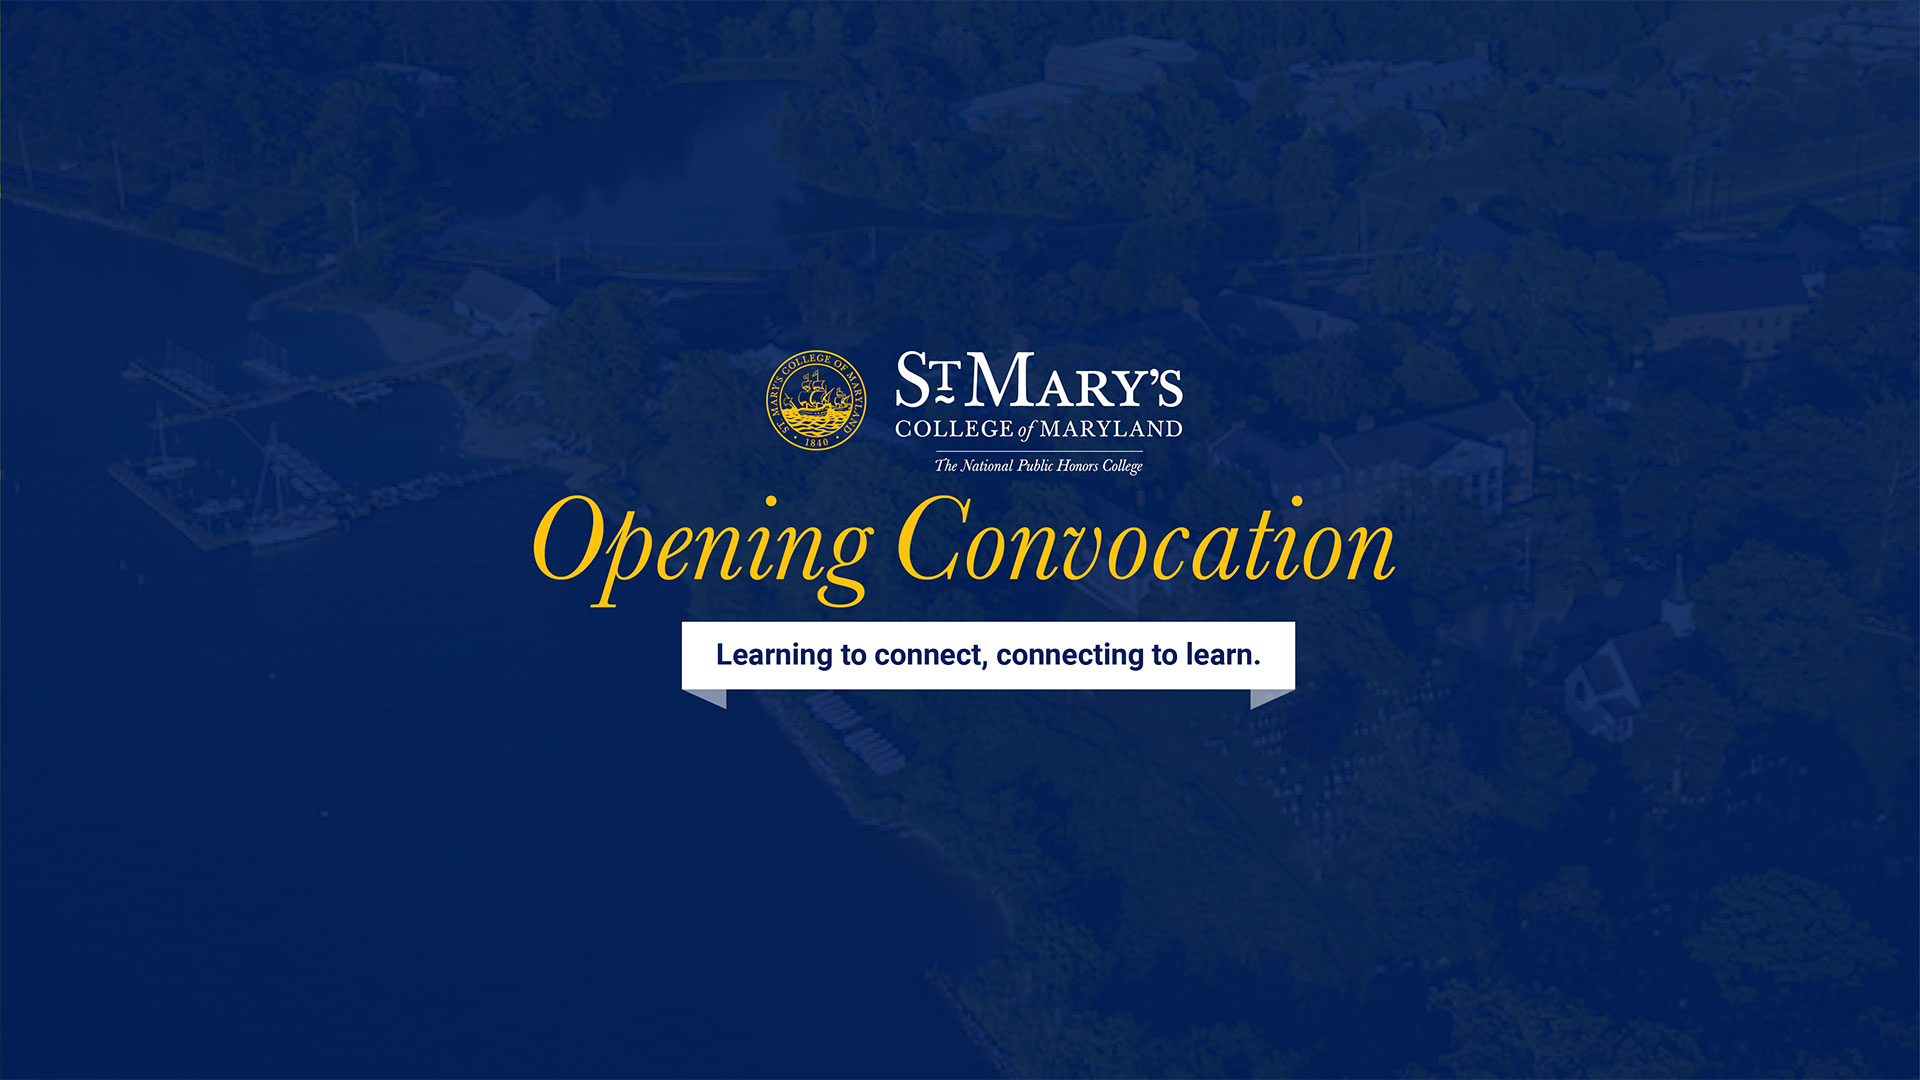 smcm-opening-convocation-2020